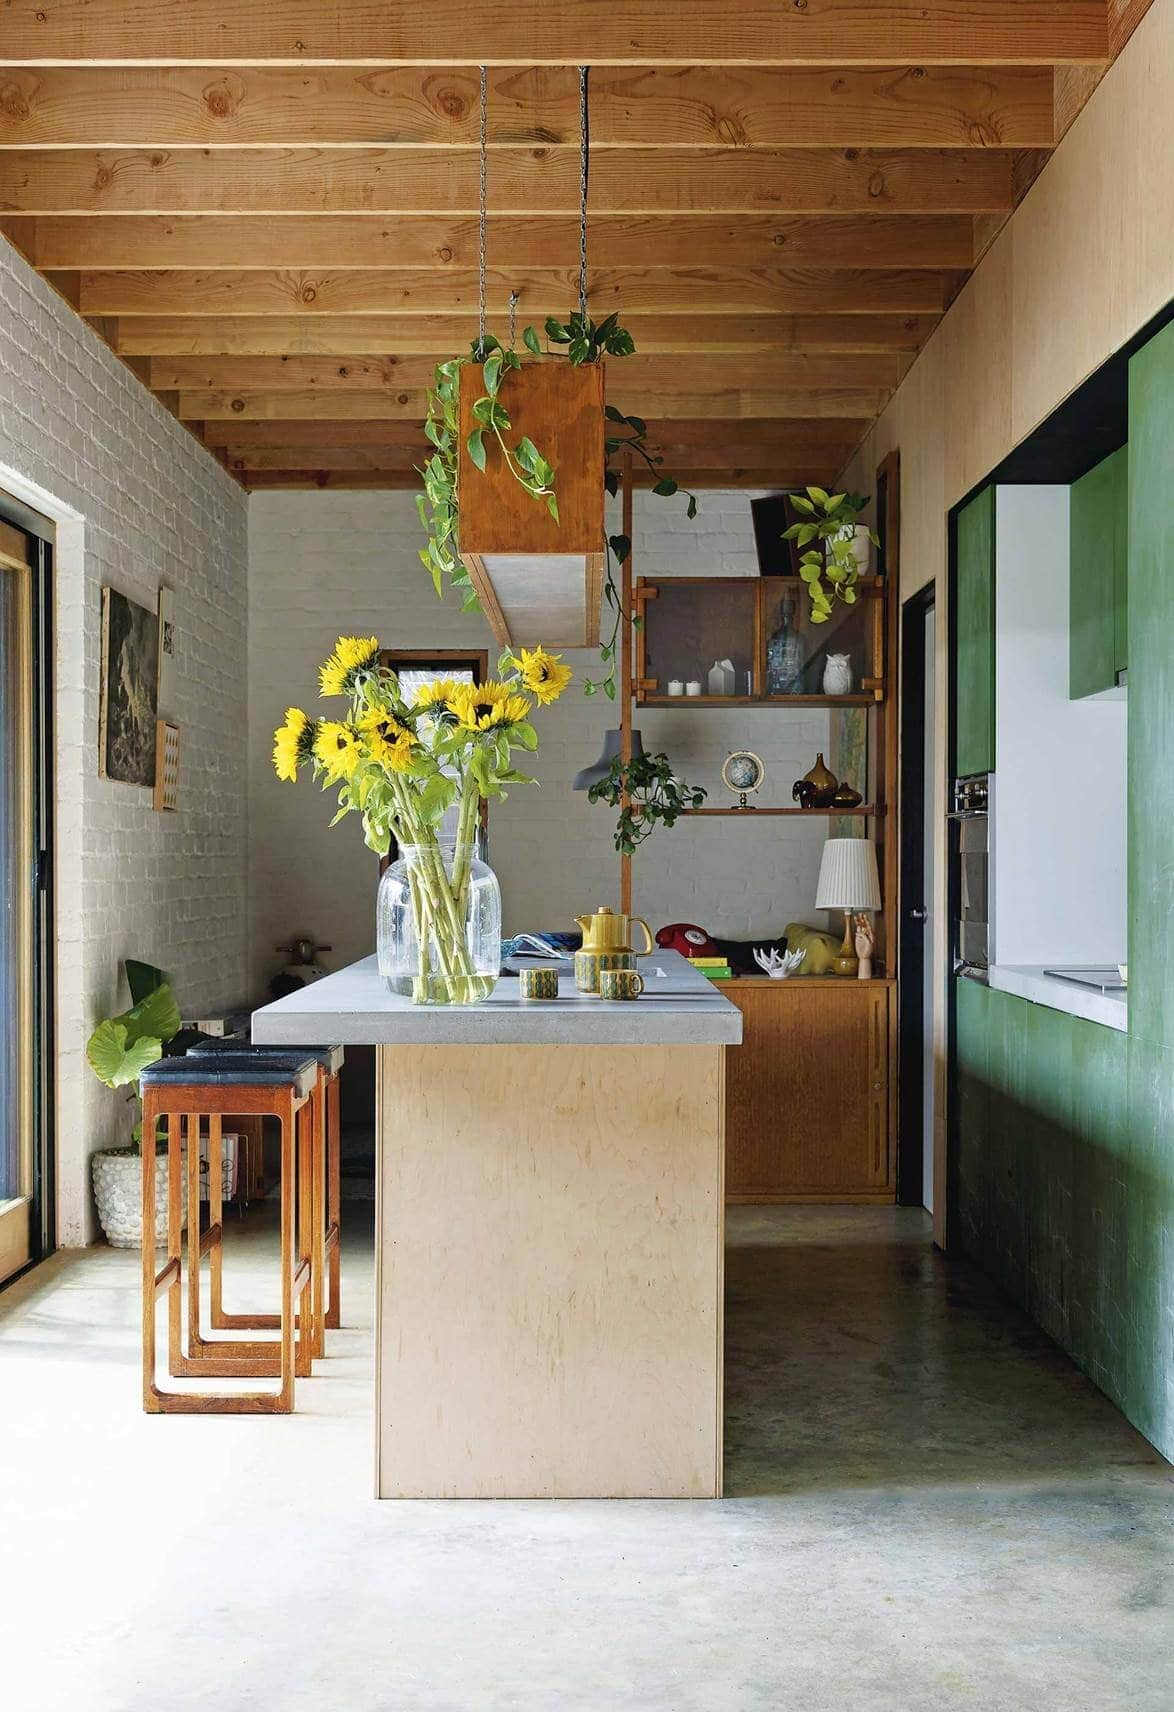 By leaving the ceiling exposed, it adds height and warmth to this kitchen. Credit:  www.homestolove.com.au